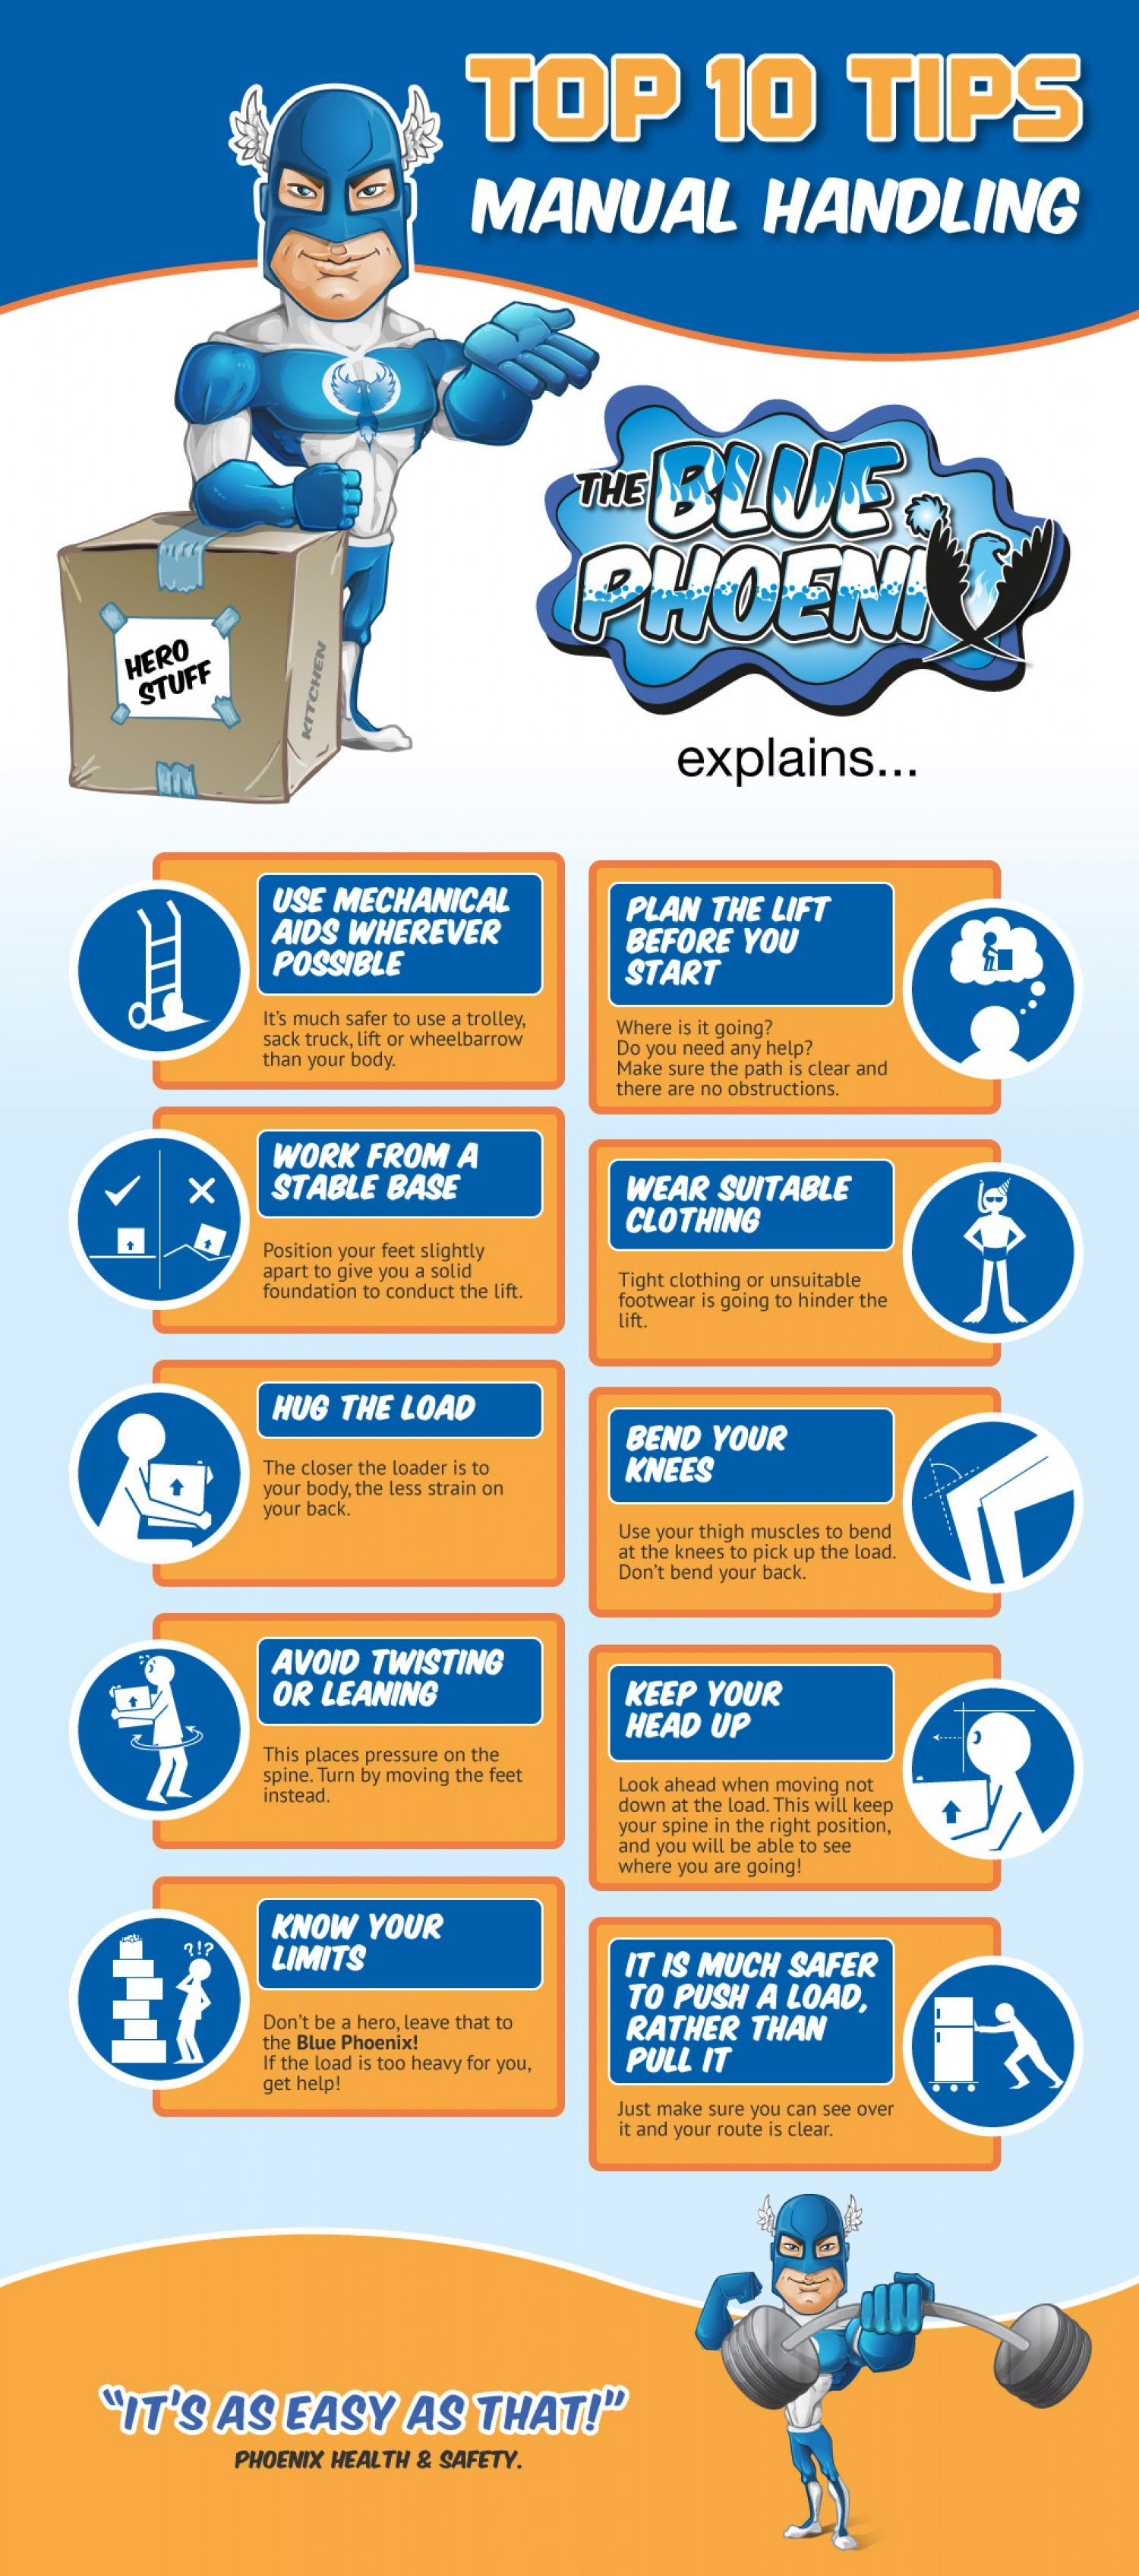 Manual Handling Manual Handling Health And Safety Occupational